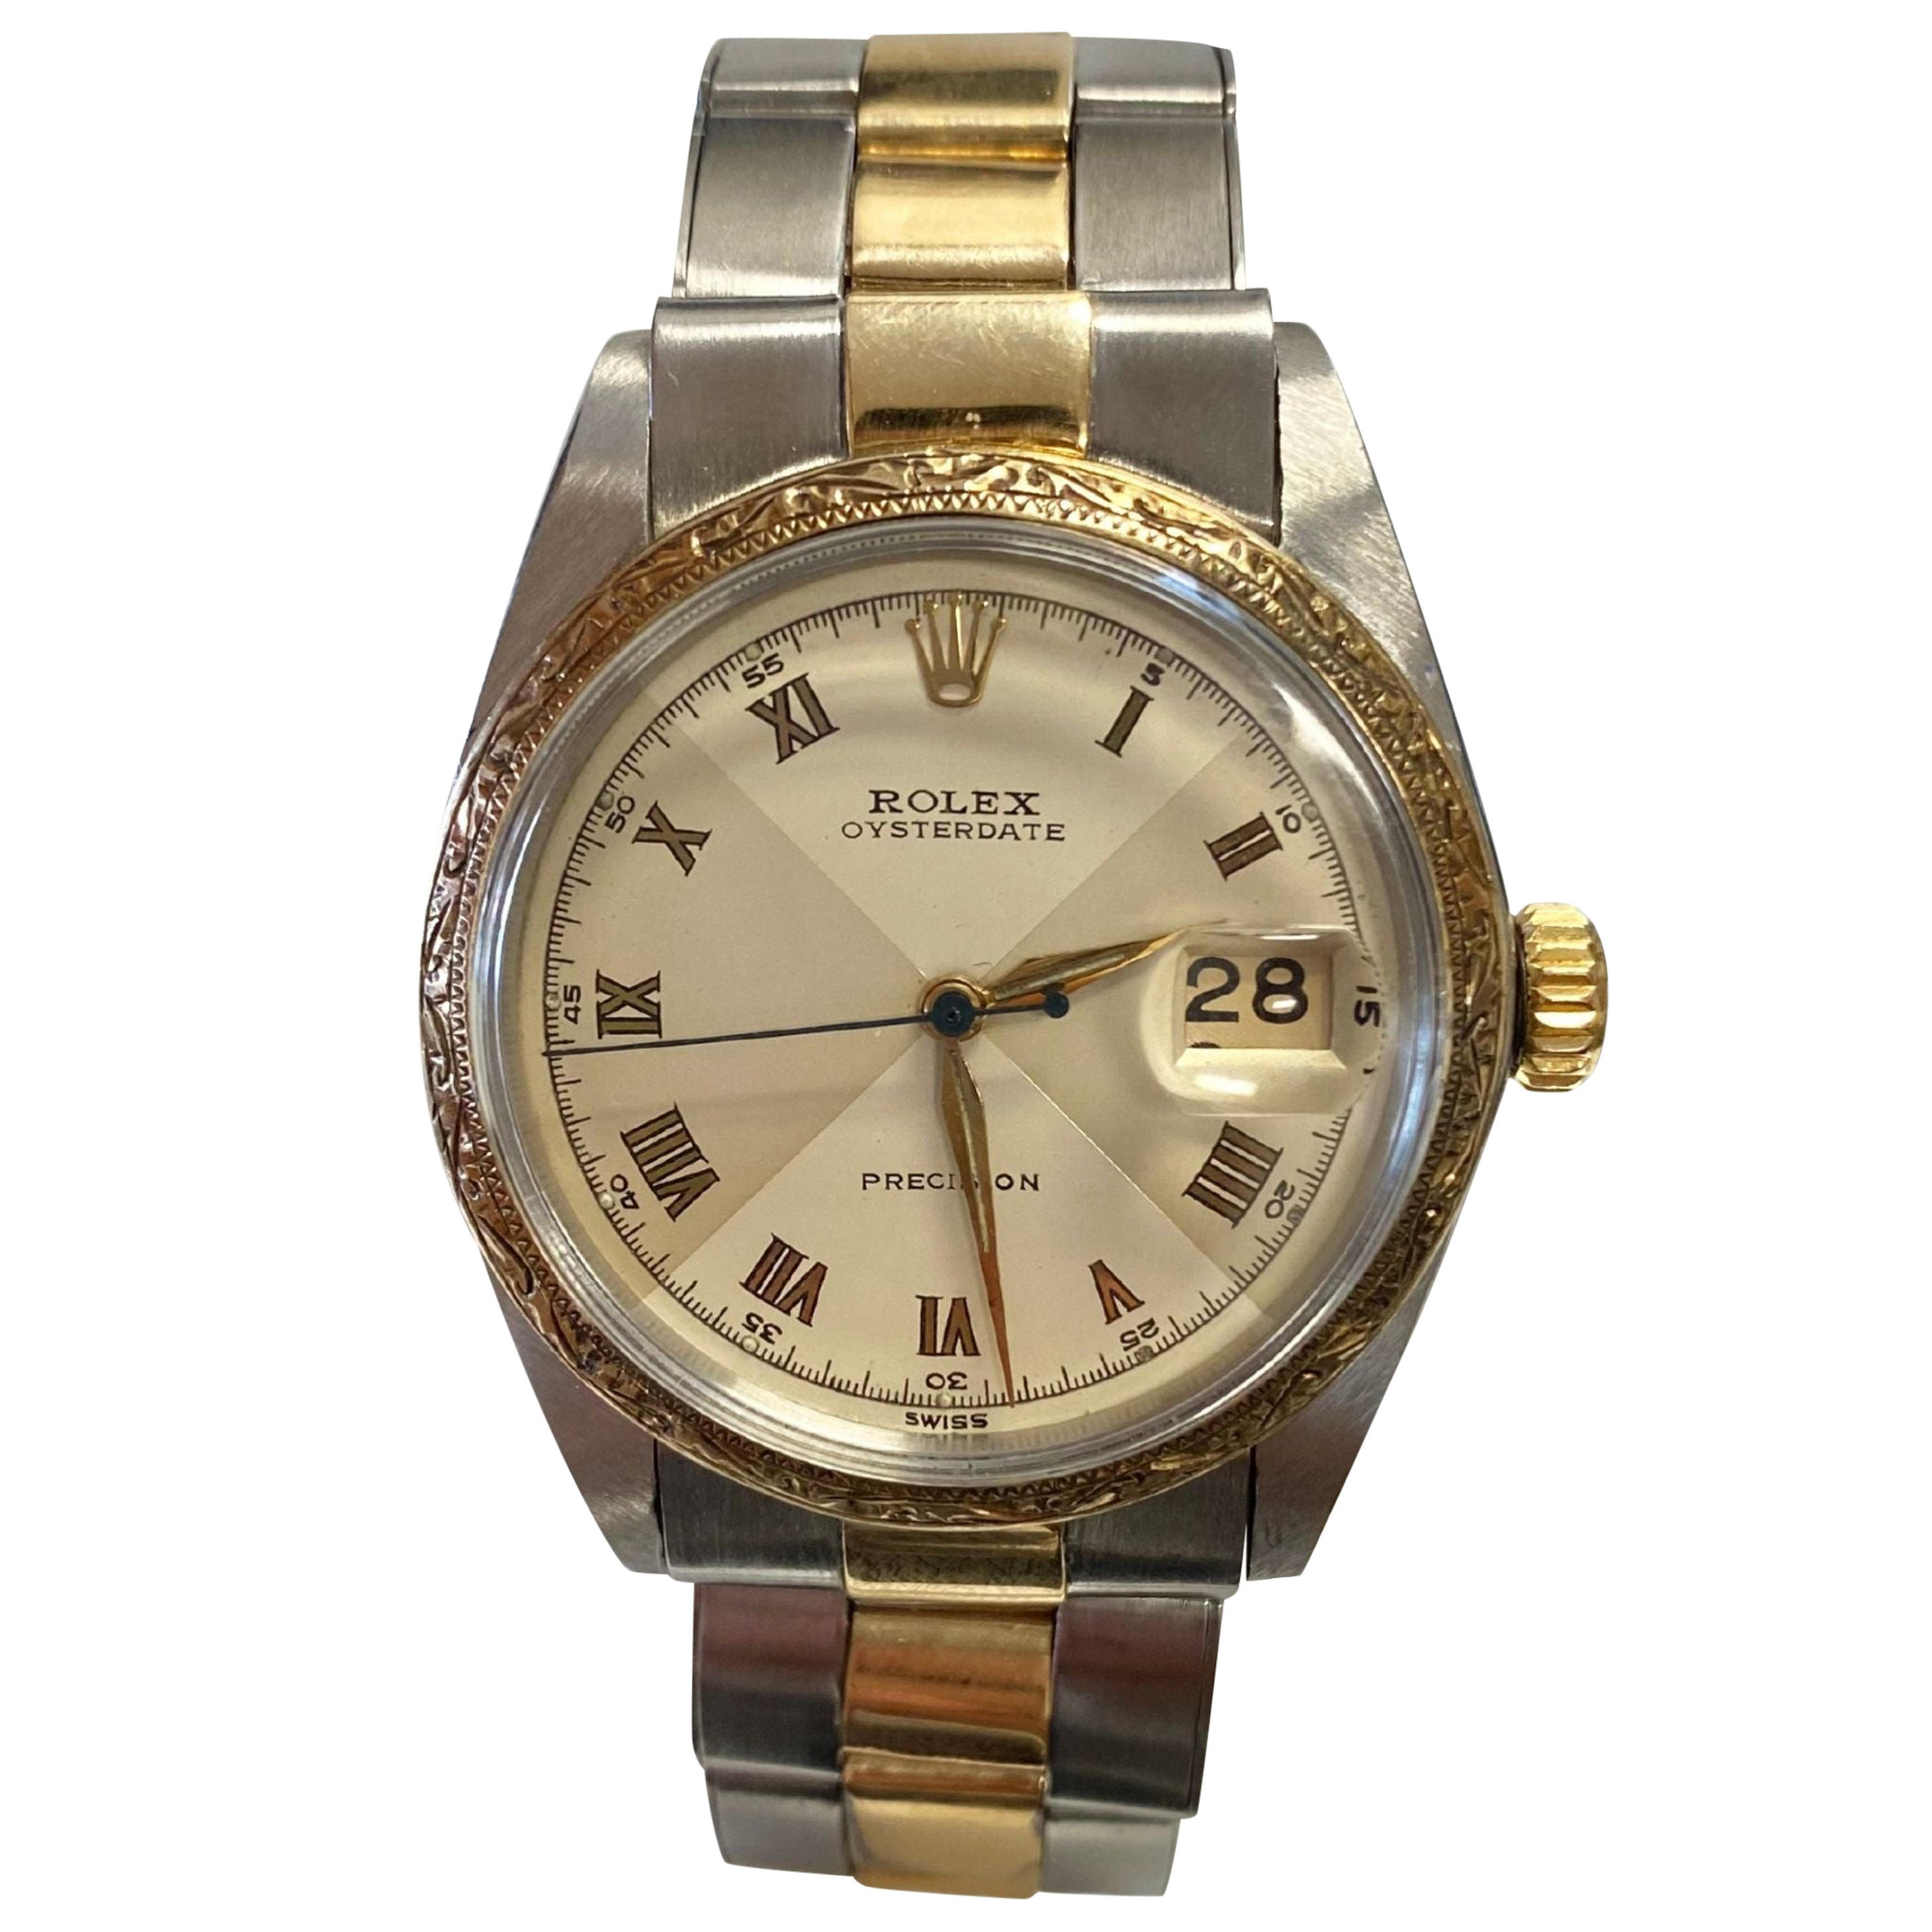 Vintage Rolex Oyster-Date Precision Two Tone Dial